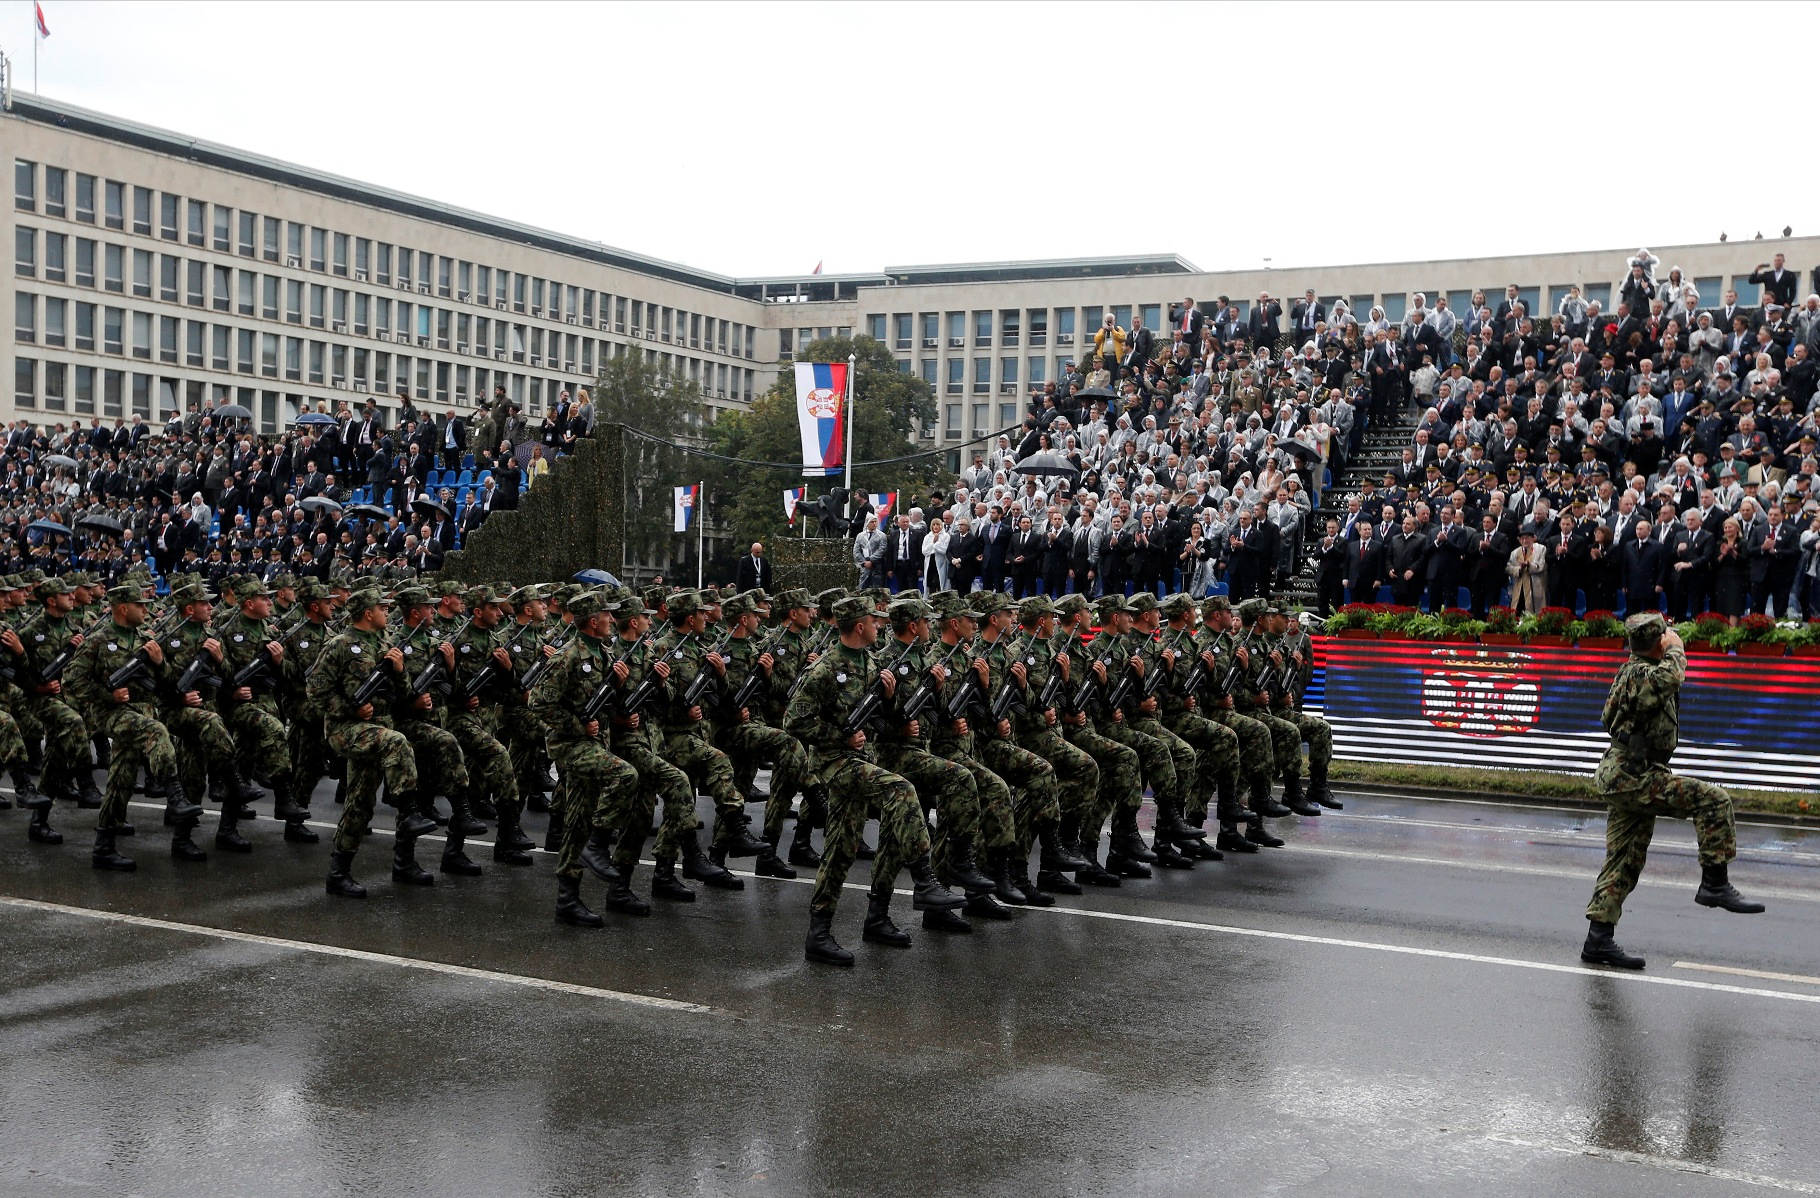 Serbian troops march during a military parade to mark 70 years since the city's liberation by the Red Army in Belgrade October 16, 2014. Serbia feted Russia's Vladimir Putin with troops, tanks and fighter-jets on Thursday to mark seven decades since the Red Army liberated Belgrade, balancing its ambitions of European integration with enduring reverence for a big-power ally deeply at odds with the West. REUTERS/Marko Djurica (SERBIA  - Tags: POLITICS MILITARY ANNIVERSARY) - RTR4AGRC